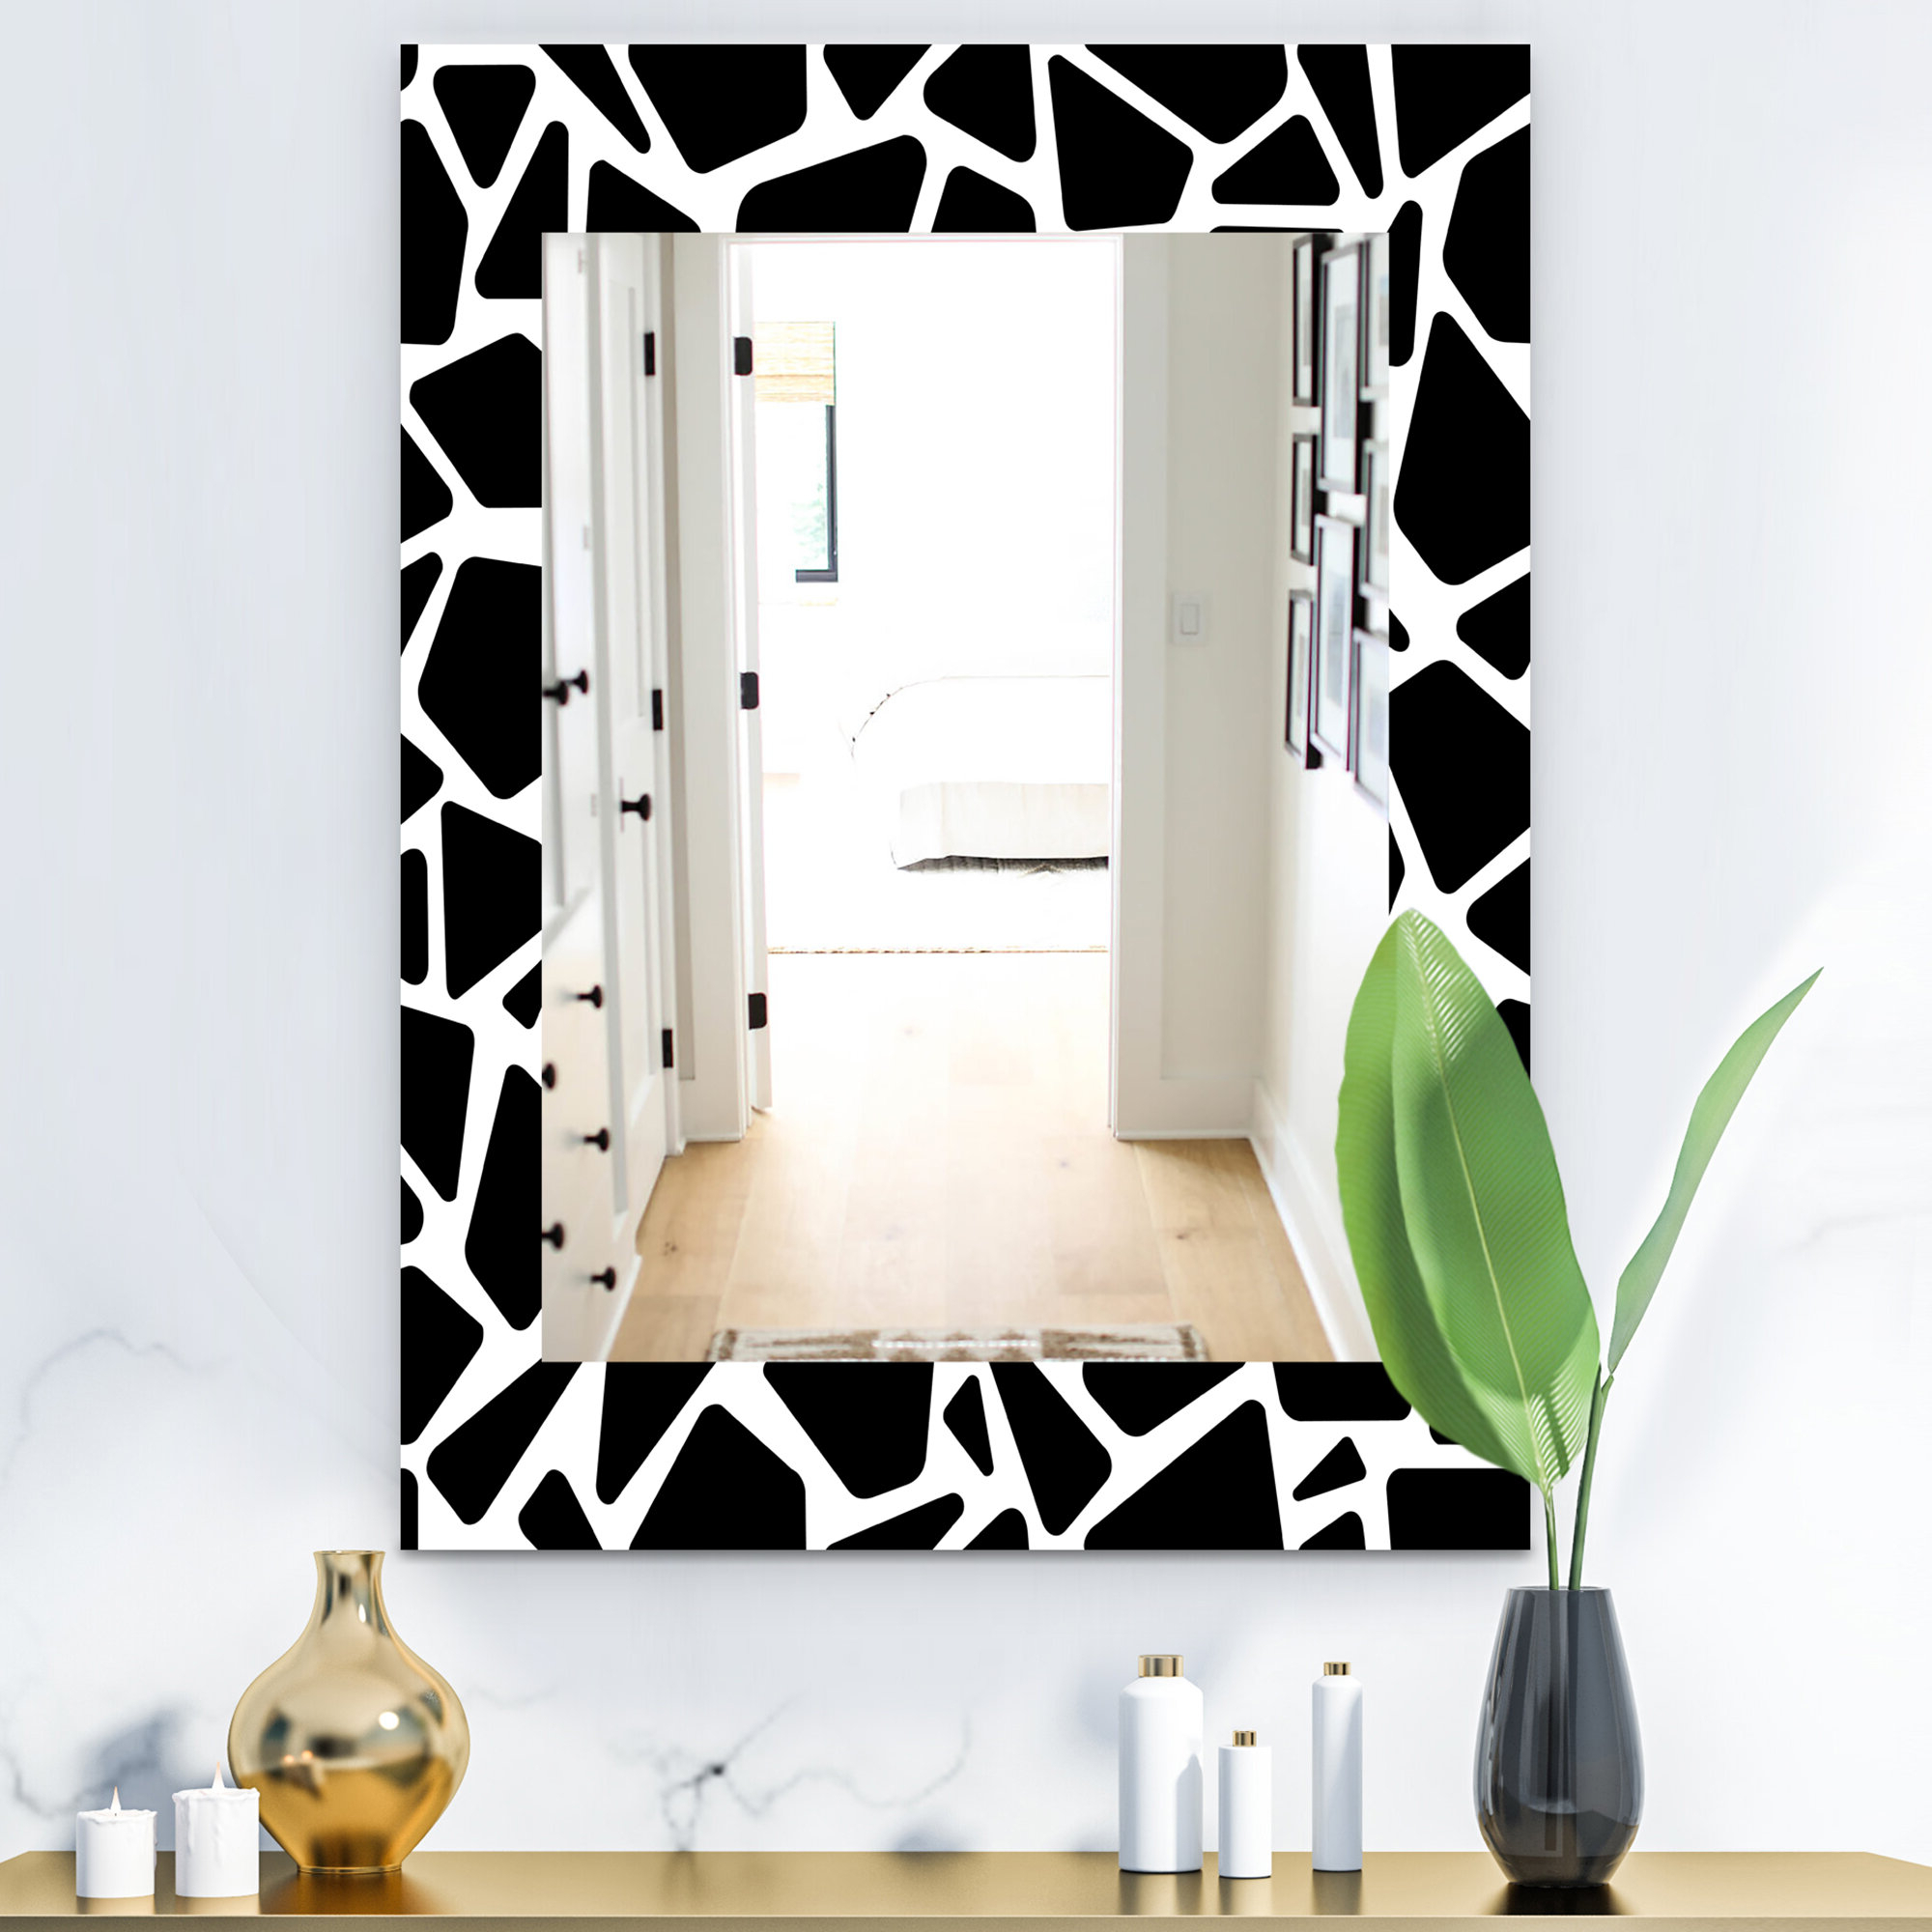 2019 Mid Century Modern And Contemporary Wall Mirror Regarding Industrial Modern & Contemporary Wall Mirrors (Gallery 11 of 20)